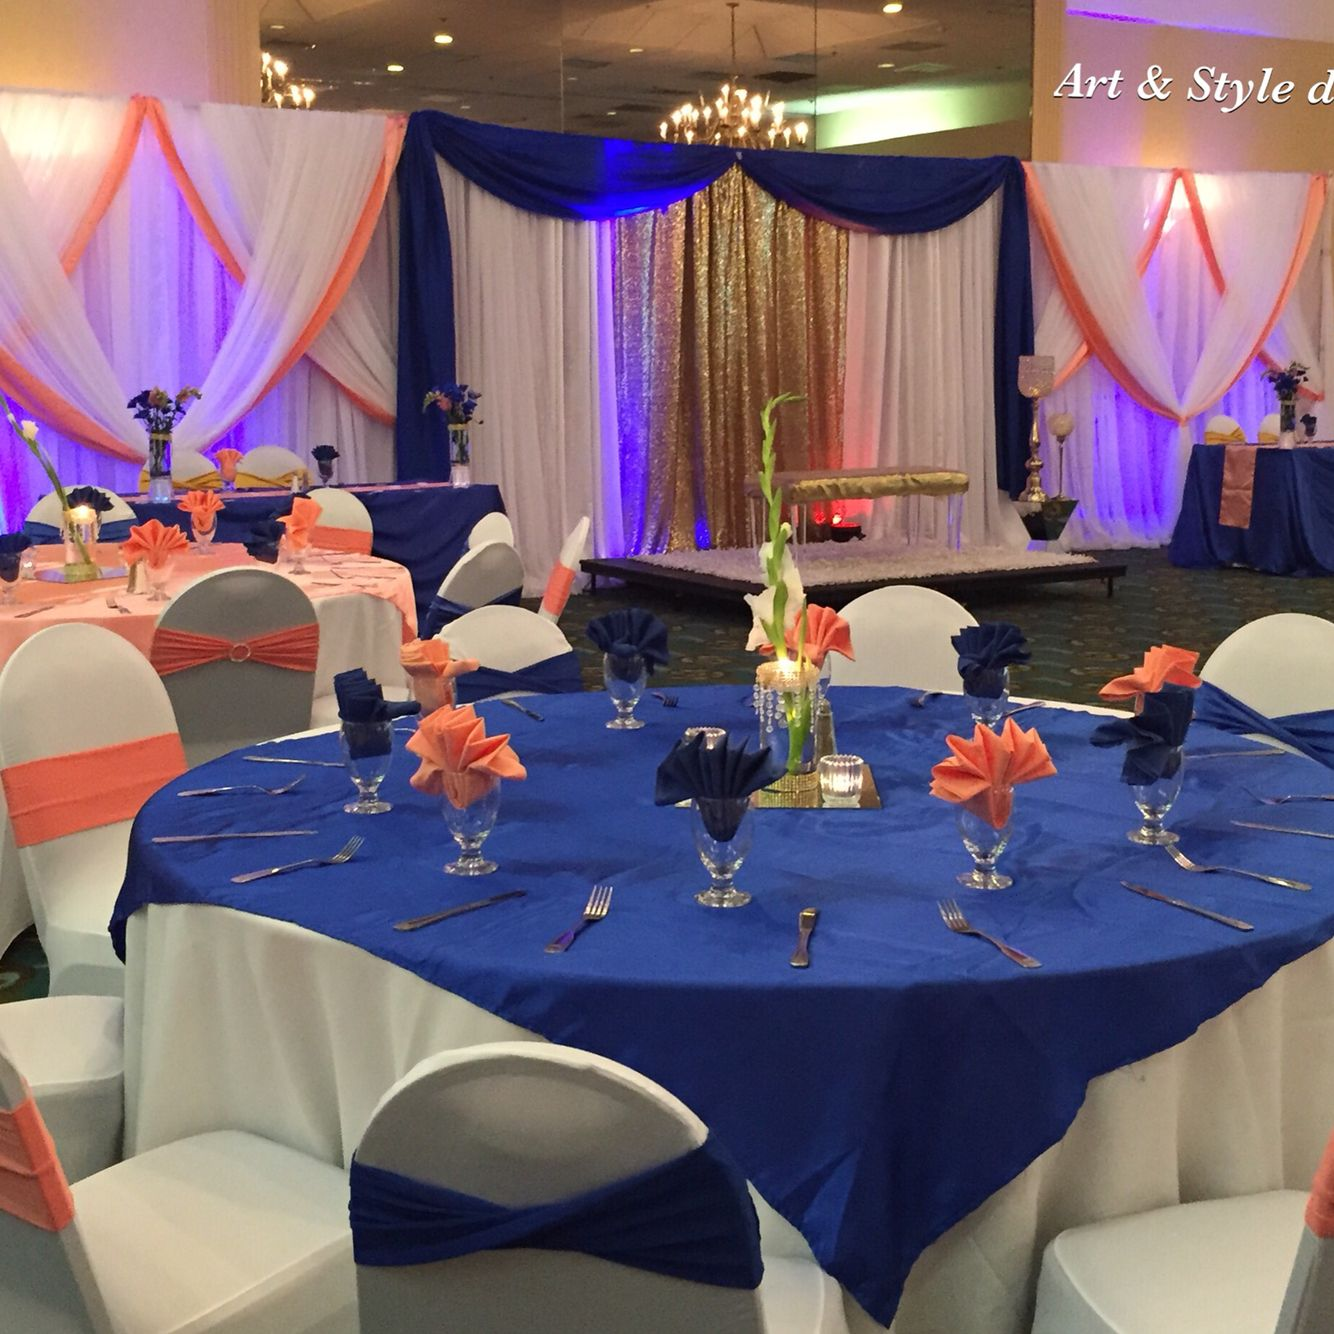 Wedding decorations with royal blue  Beautiful Wedding decor Royal Blue and Coral artandstyledecor